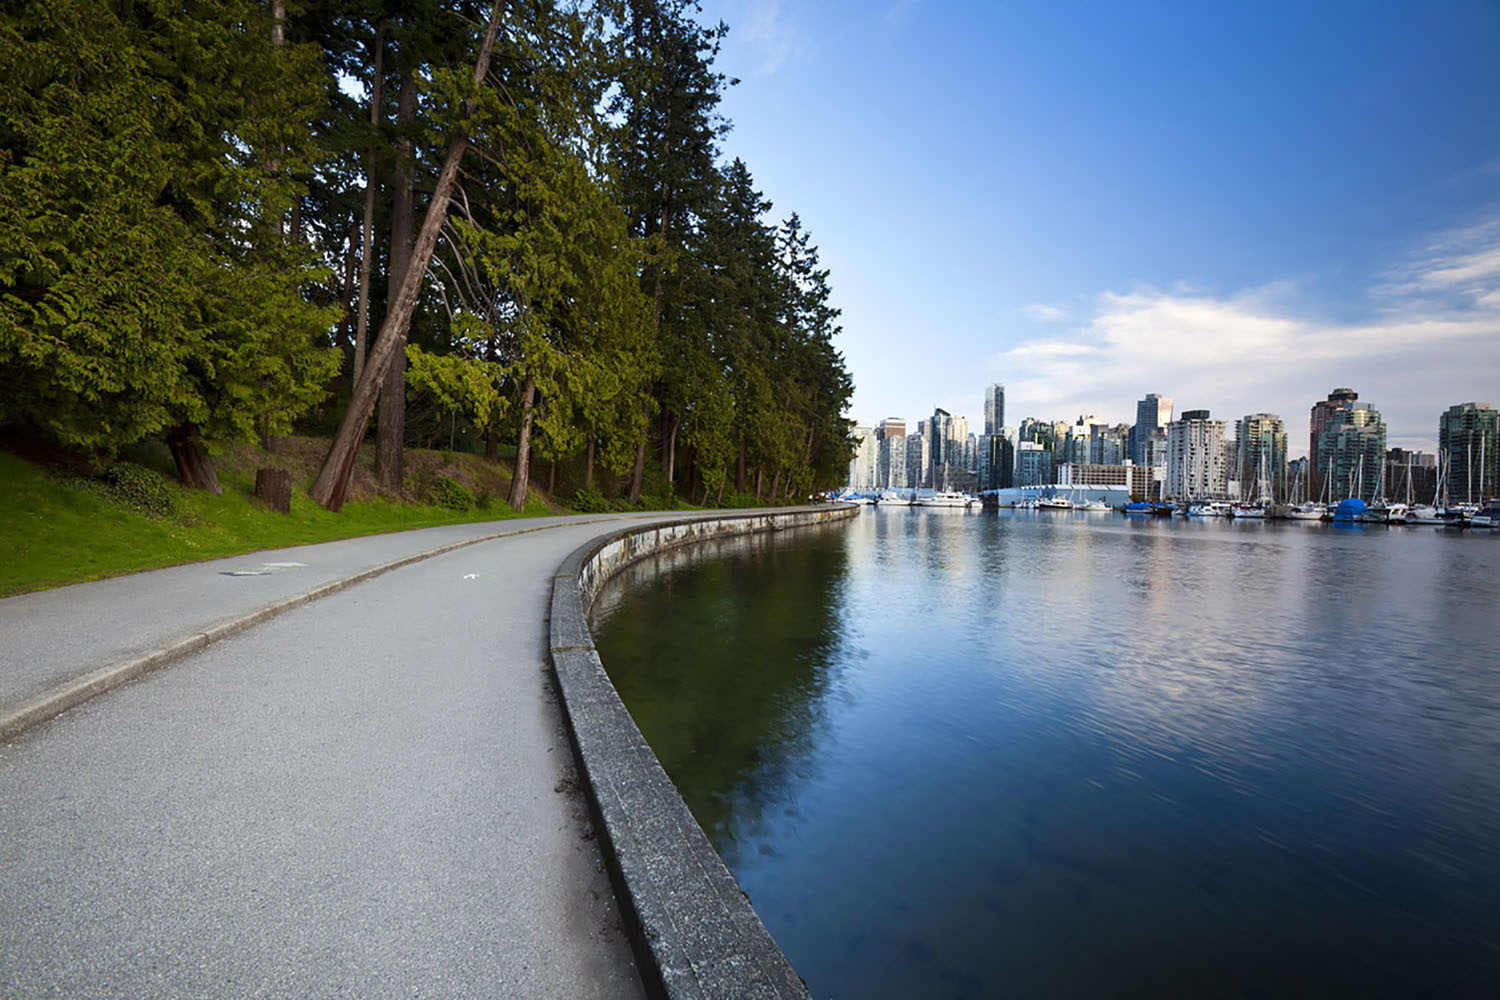 The Stanley Park Seawall in Vancouver with a view of the city skyline.